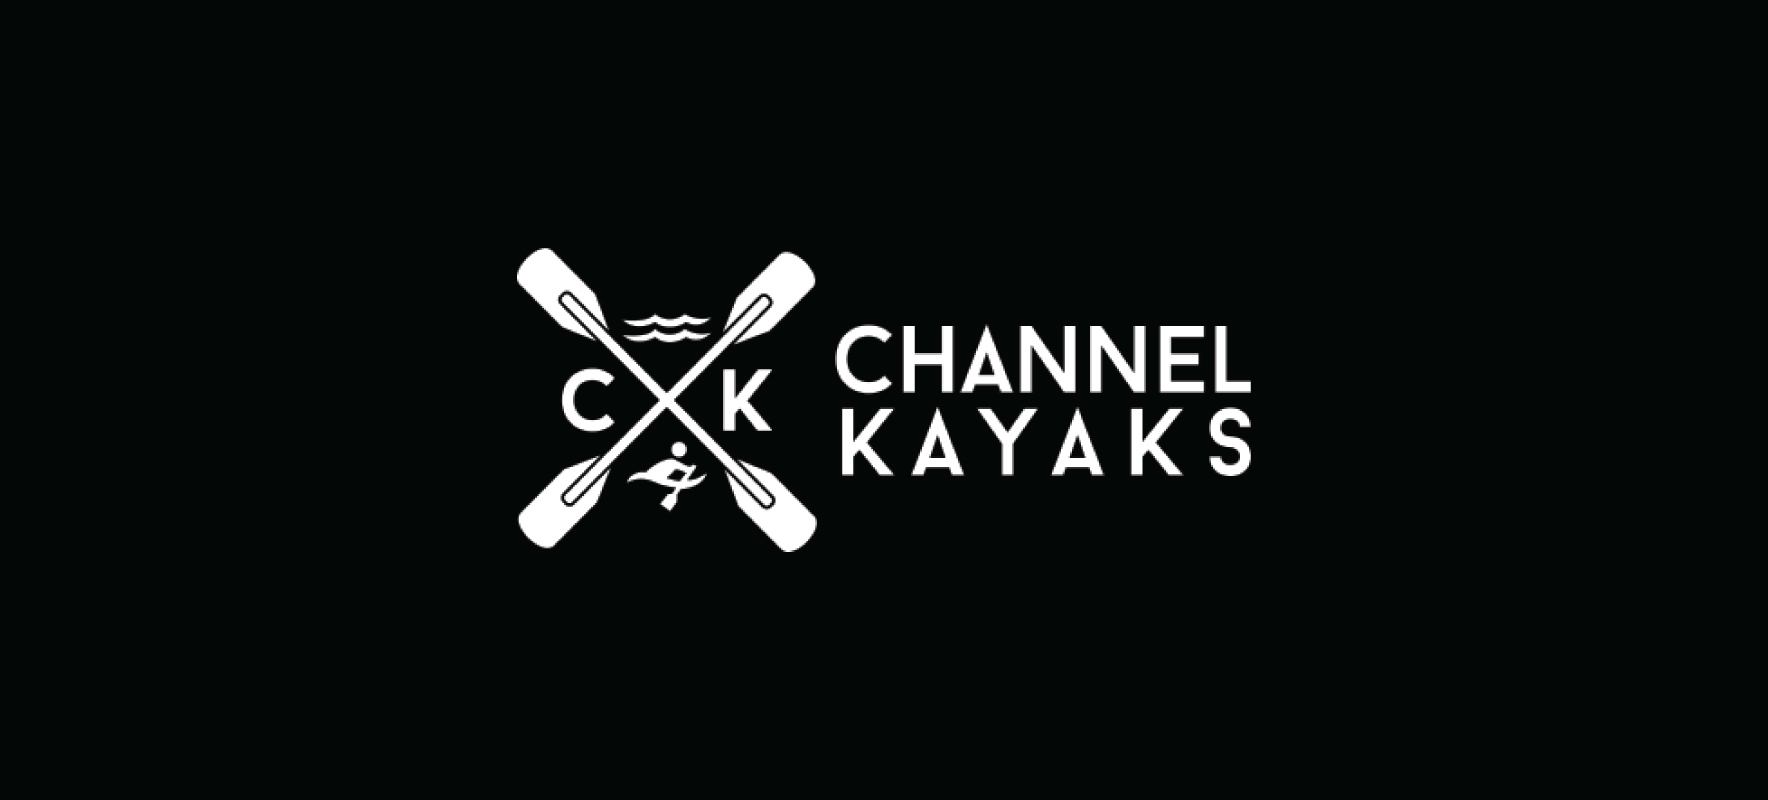 Channel Kayaks